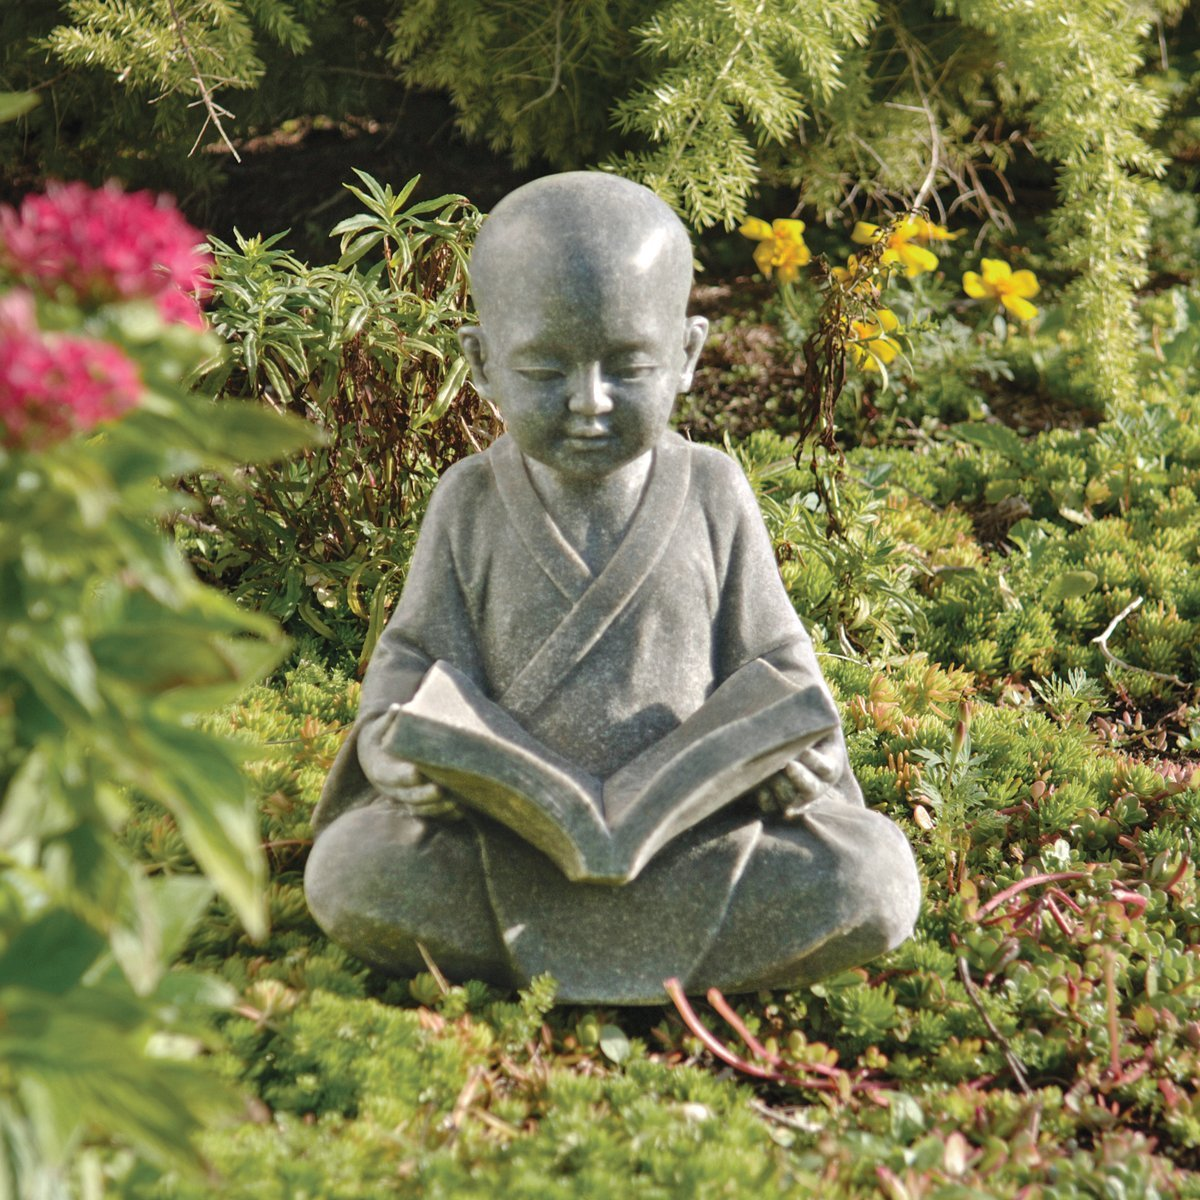 baby buddha reading book garden statue garden buddha statues. Black Bedroom Furniture Sets. Home Design Ideas